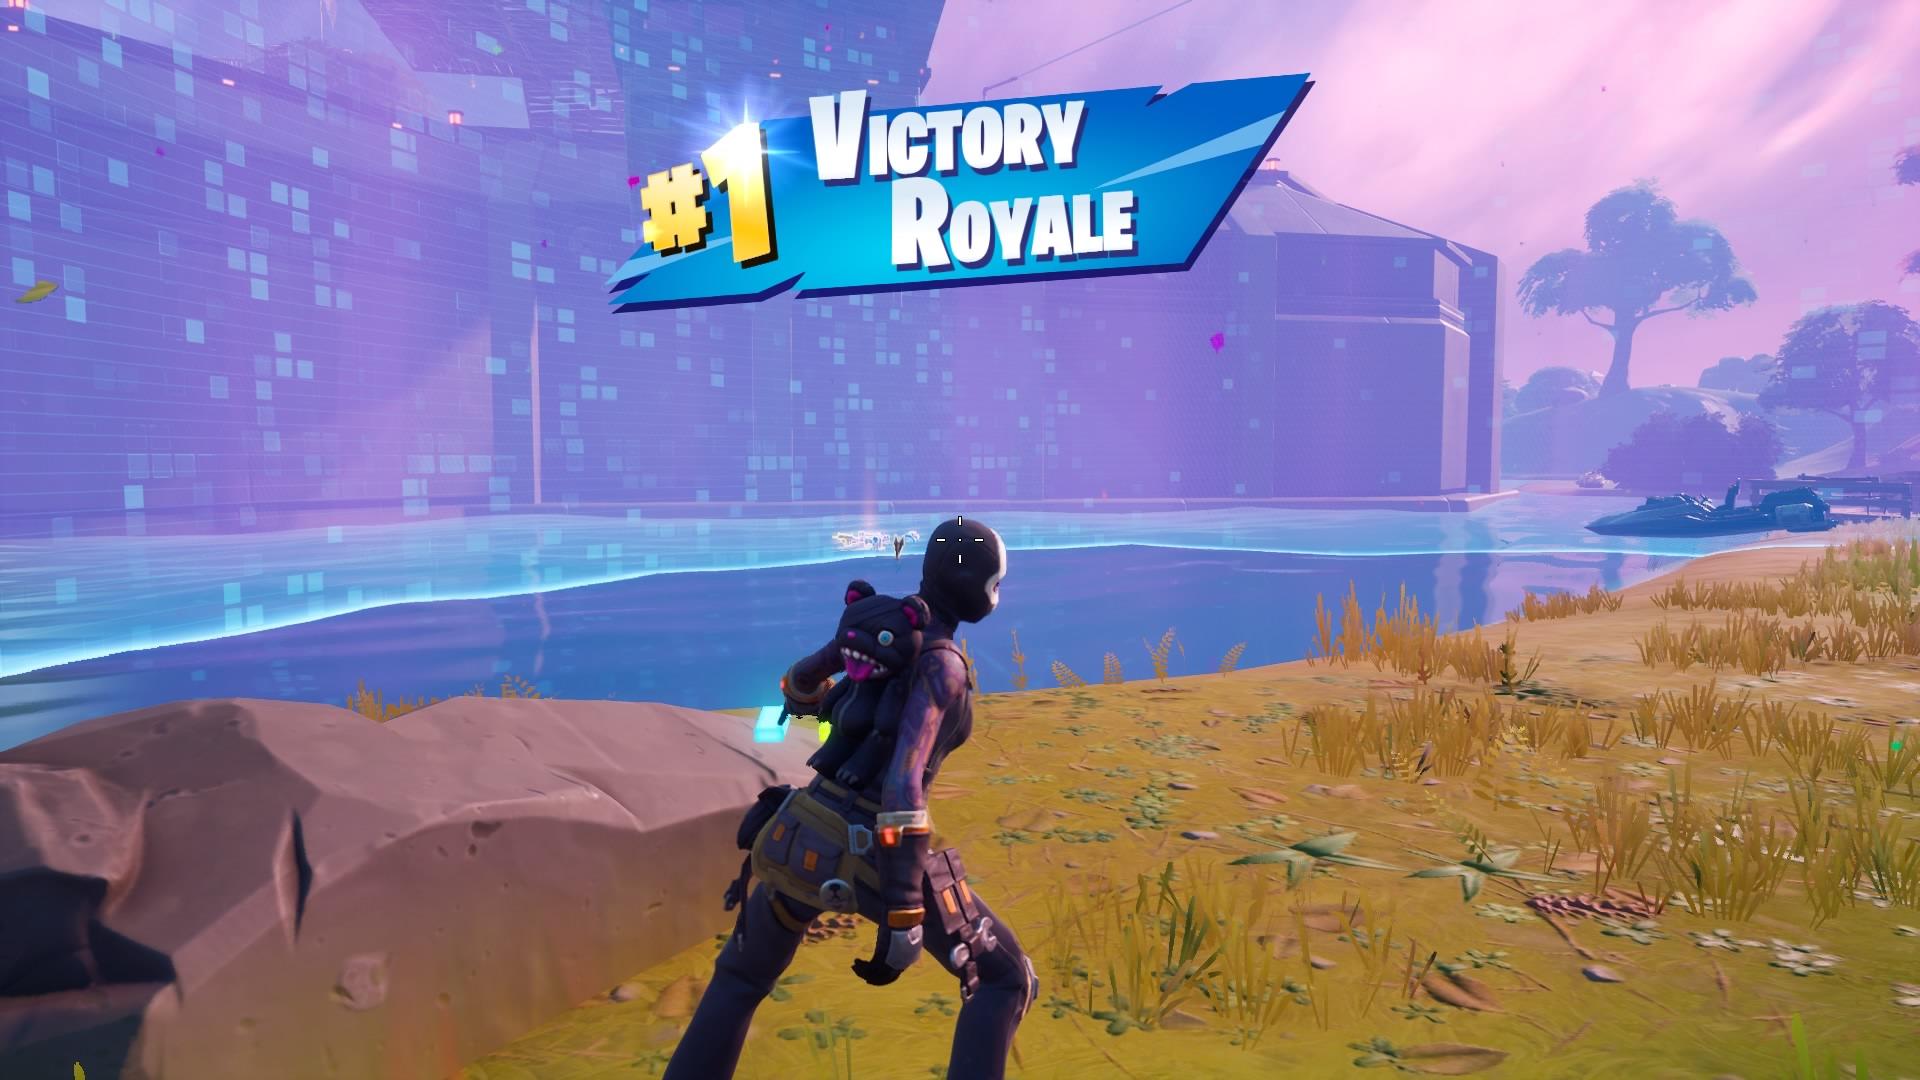 fortnite victory wallpaper 71486